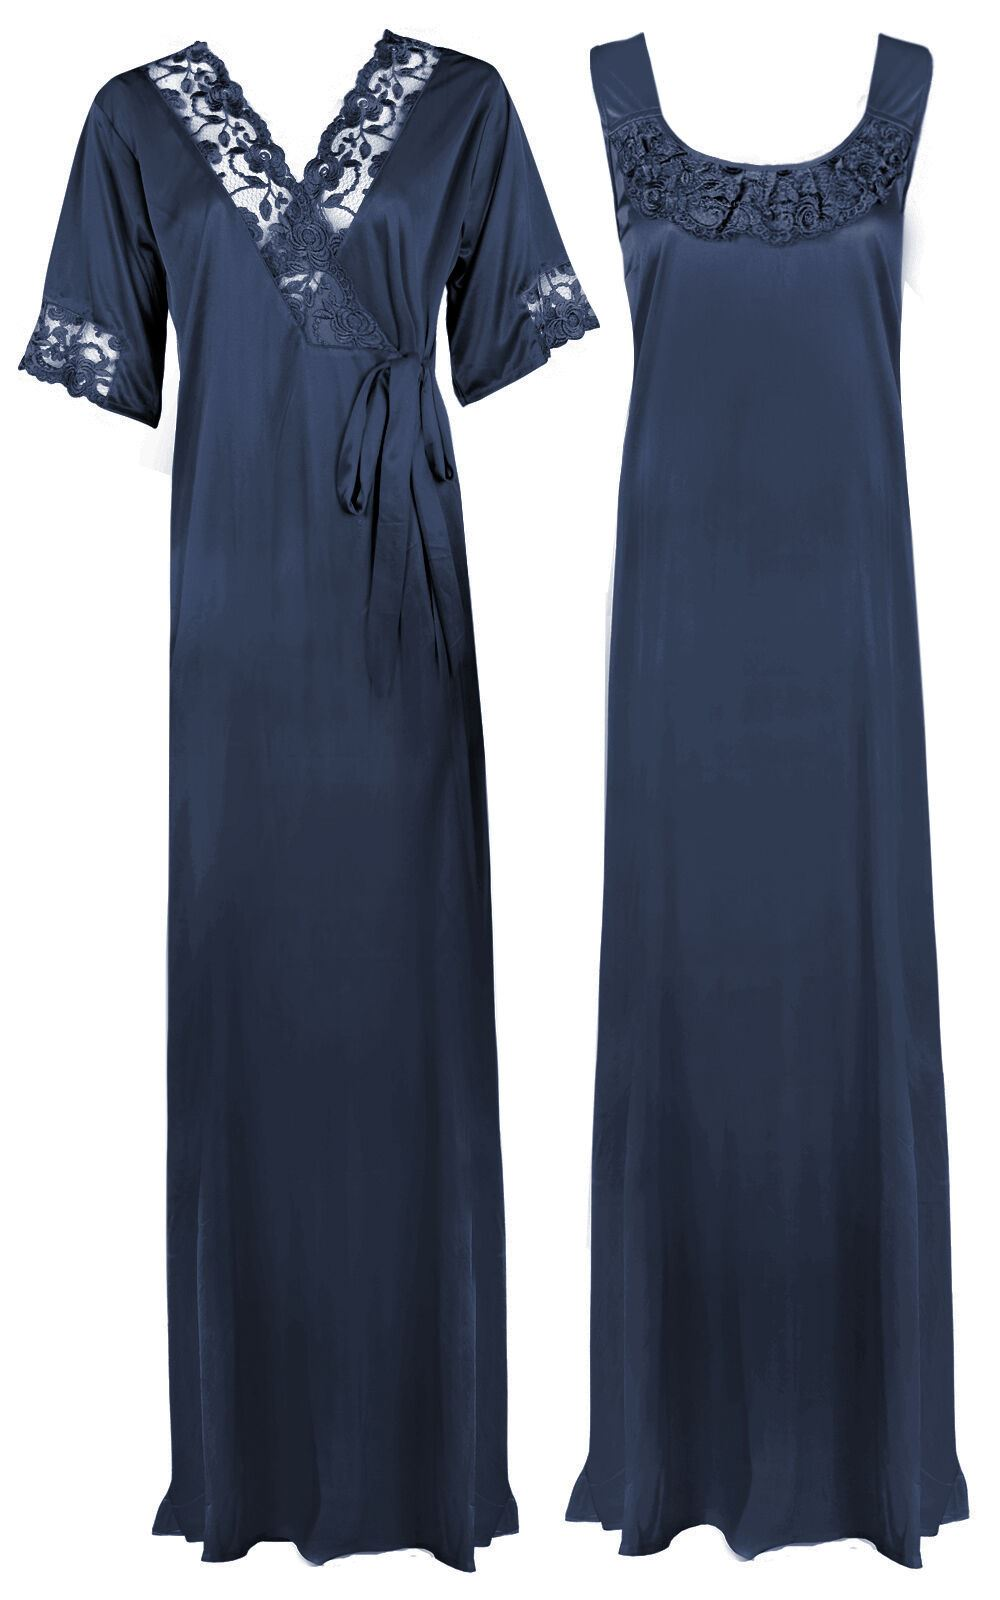 Women Plus Size 2 Pcs Satin Nightdress - XL. 2XL MIDNIGHT BLUE Hautie Nightfashion